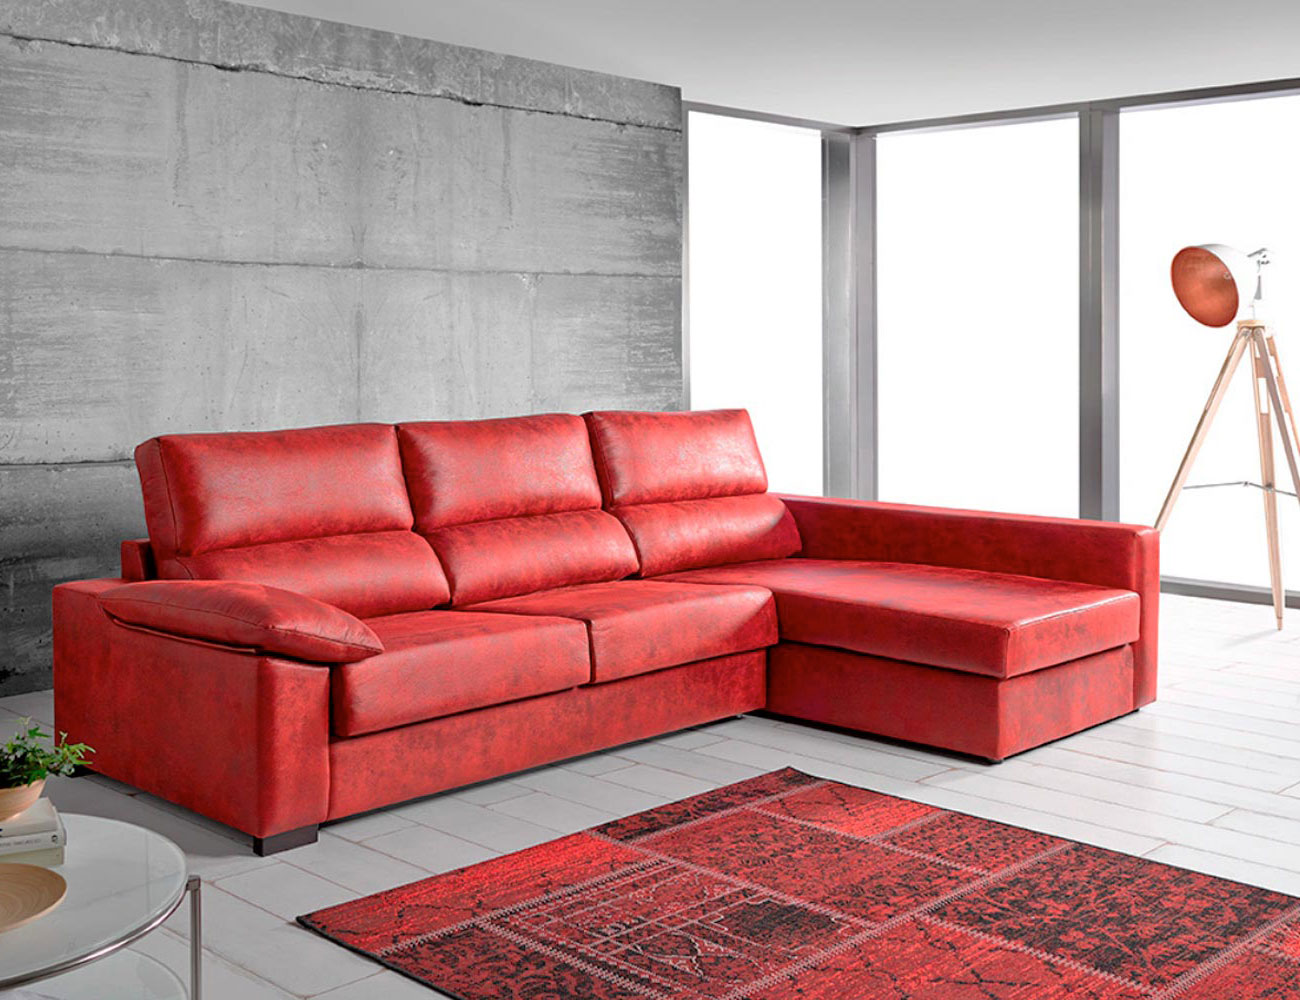 Sofa chaiselongue cama italiana leire rojo1